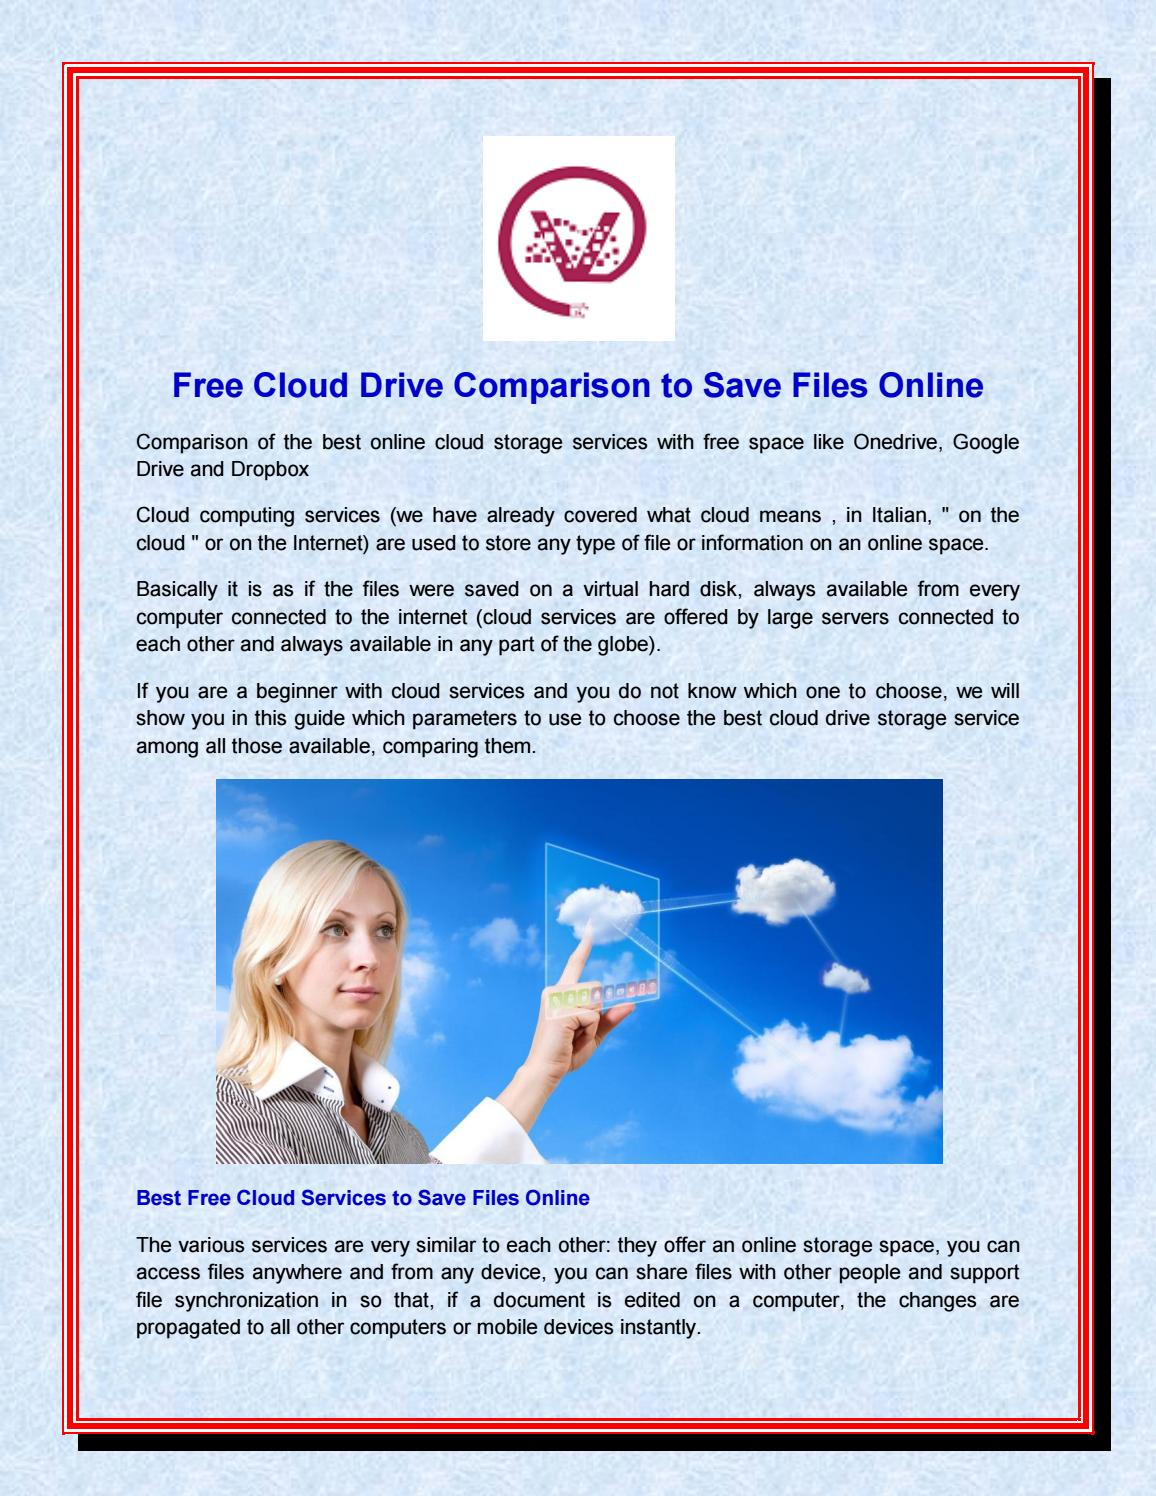 Free cloud drive comparison to save files online by Virtual